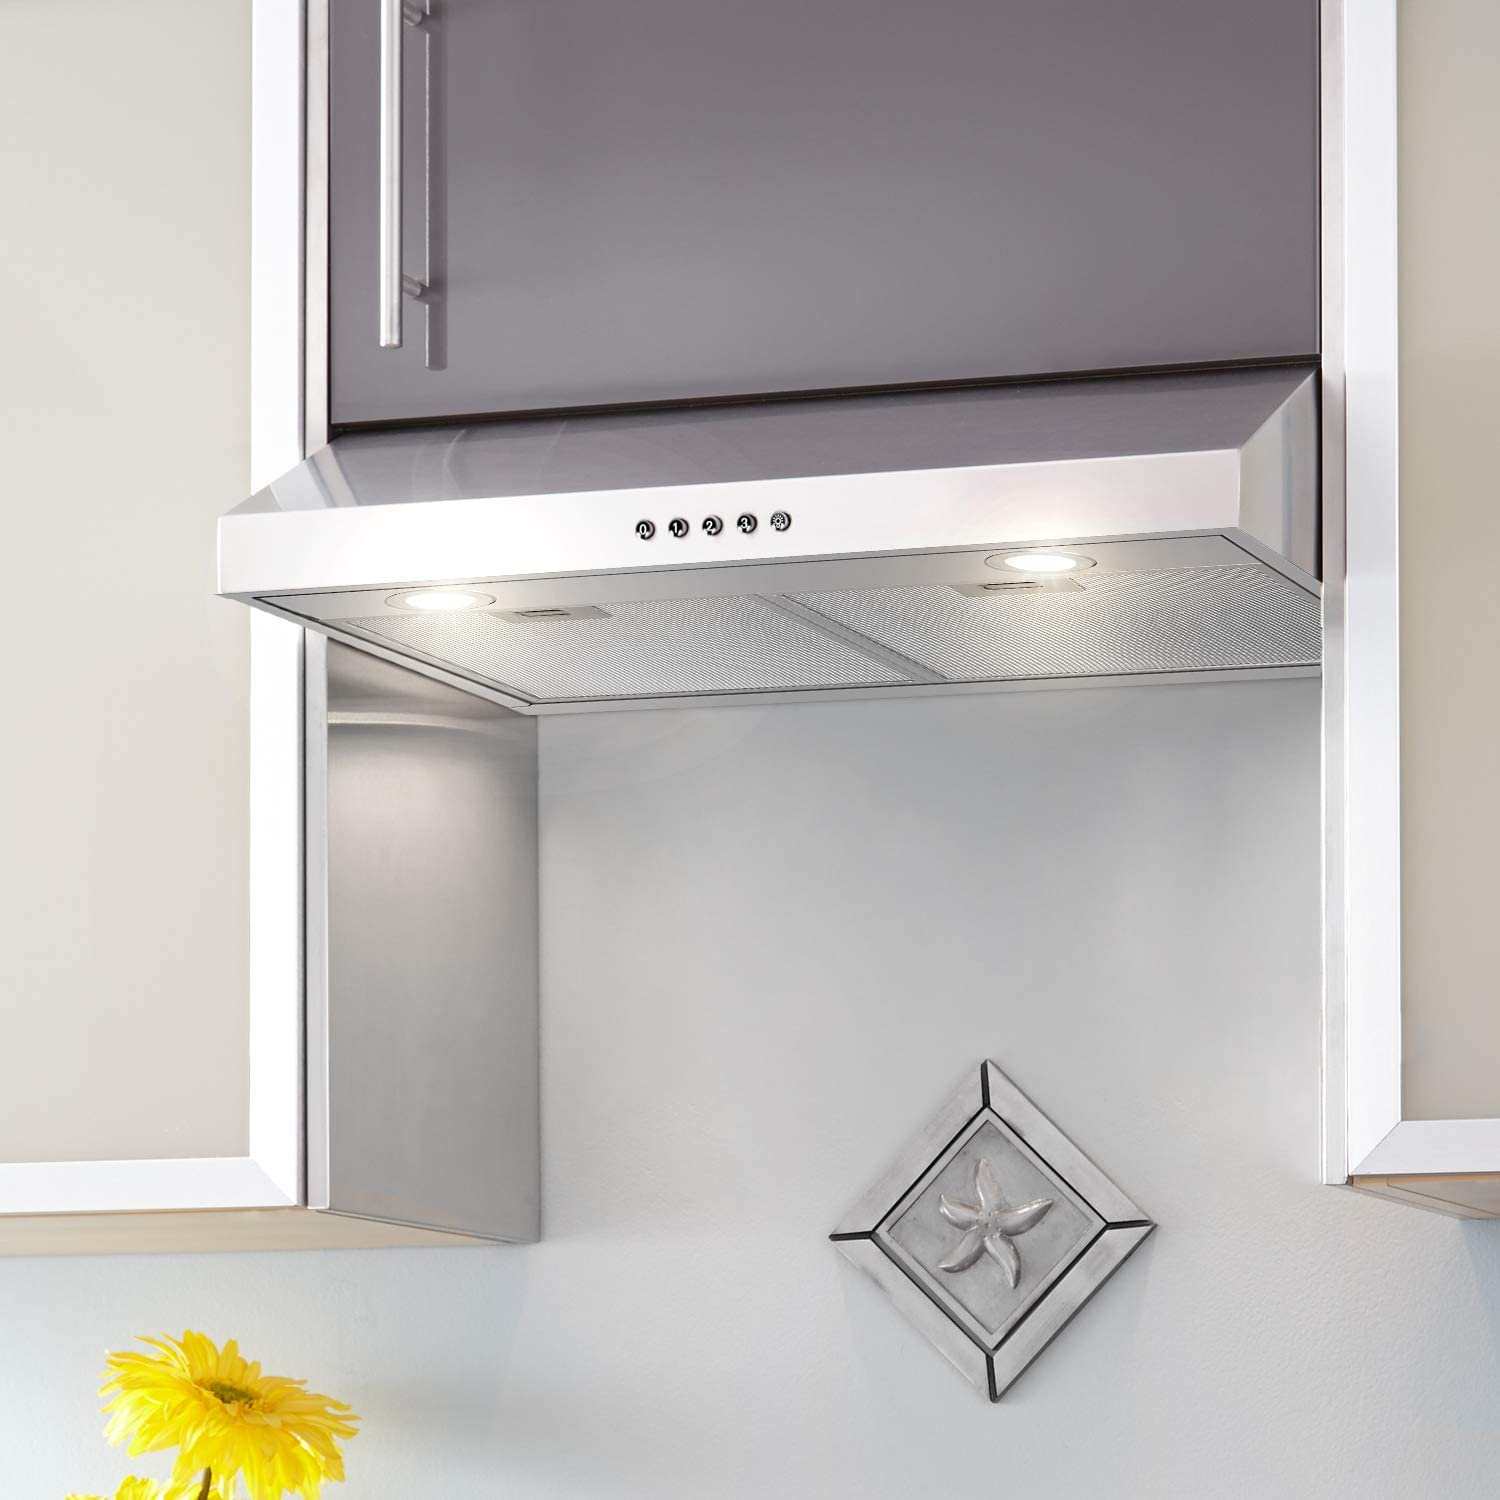 Push Button Hykolity 30 inch Under Cabinet Range Hood with Ducted Reusable Aluminum Filters Stainless Steel Kitchen Stove Vent Hood with 3 Speed Exhaust Fan 350 CFM